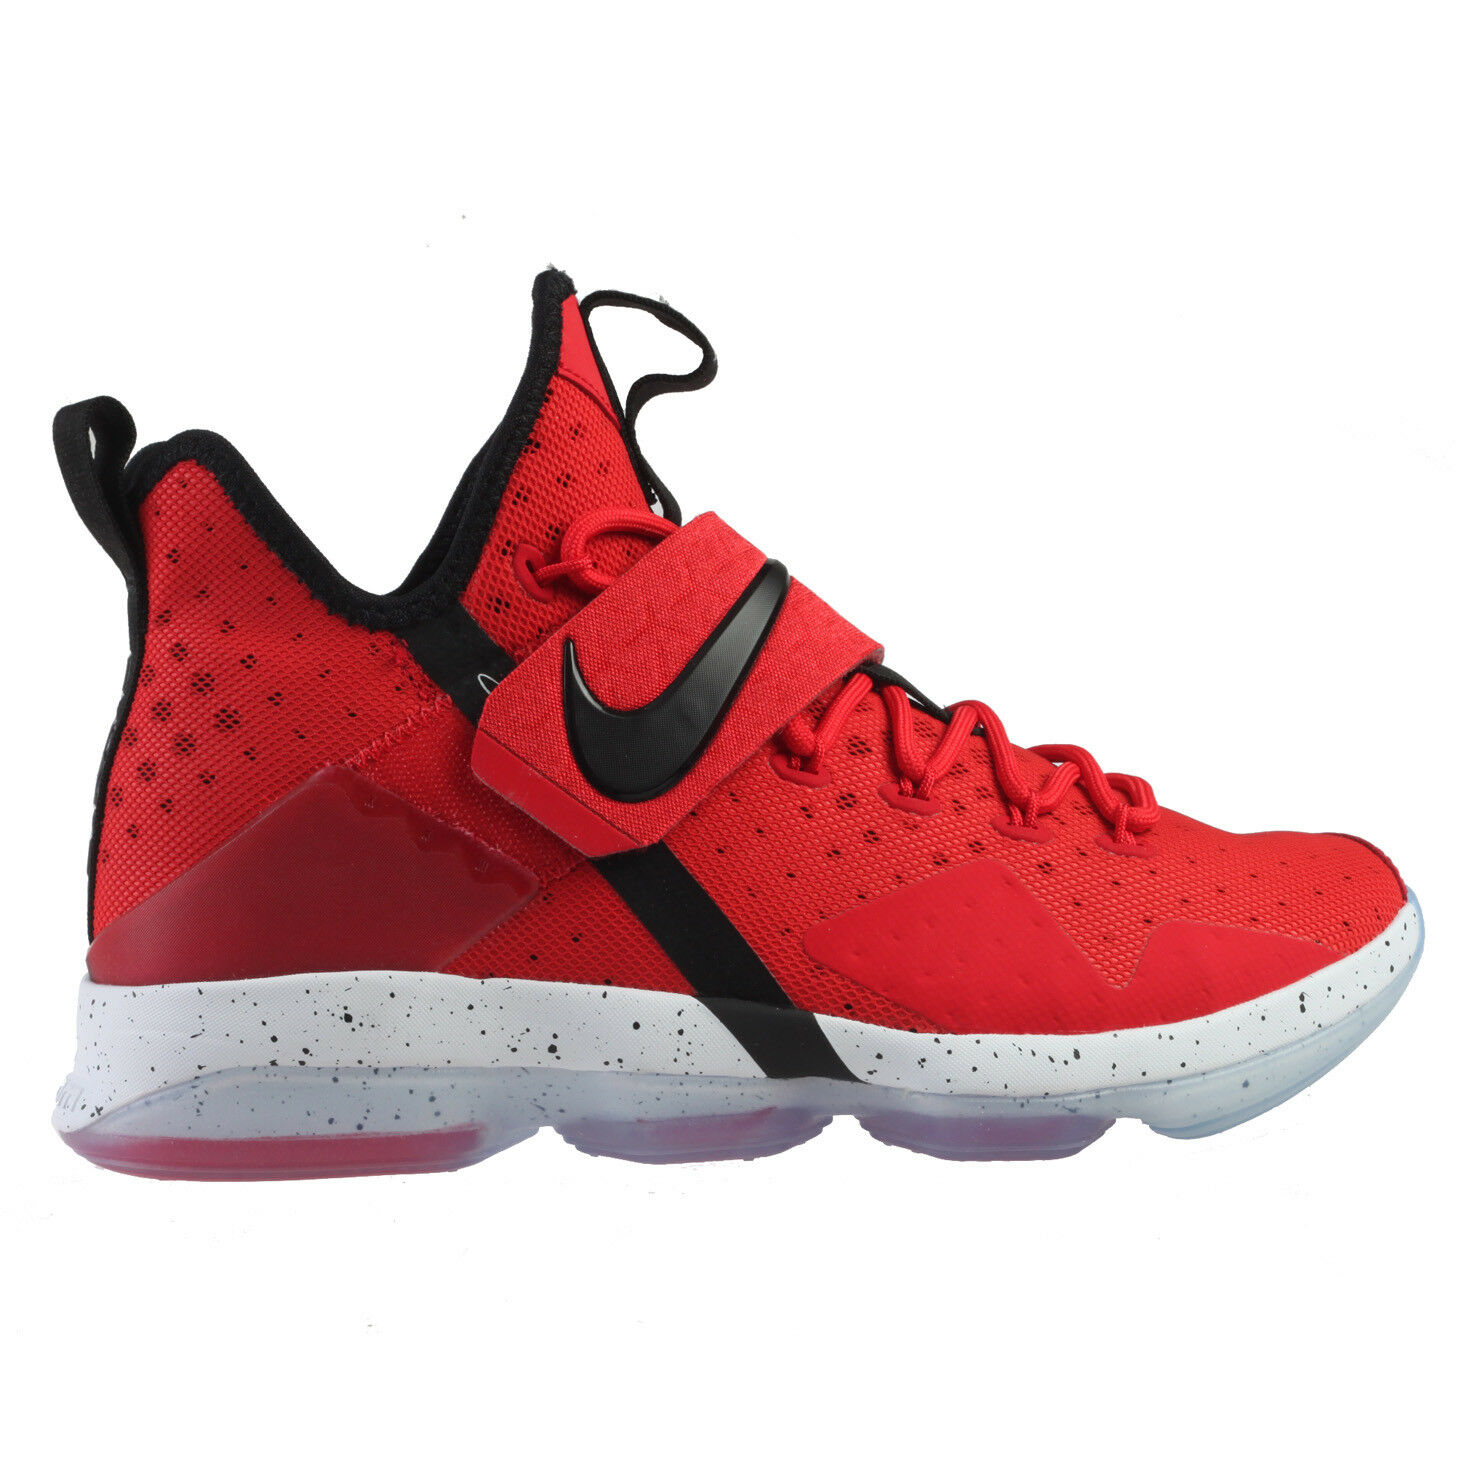 Nike Lebron 14 XIV Mens 852405-600 University Red Black Basketball Shoes Size 11